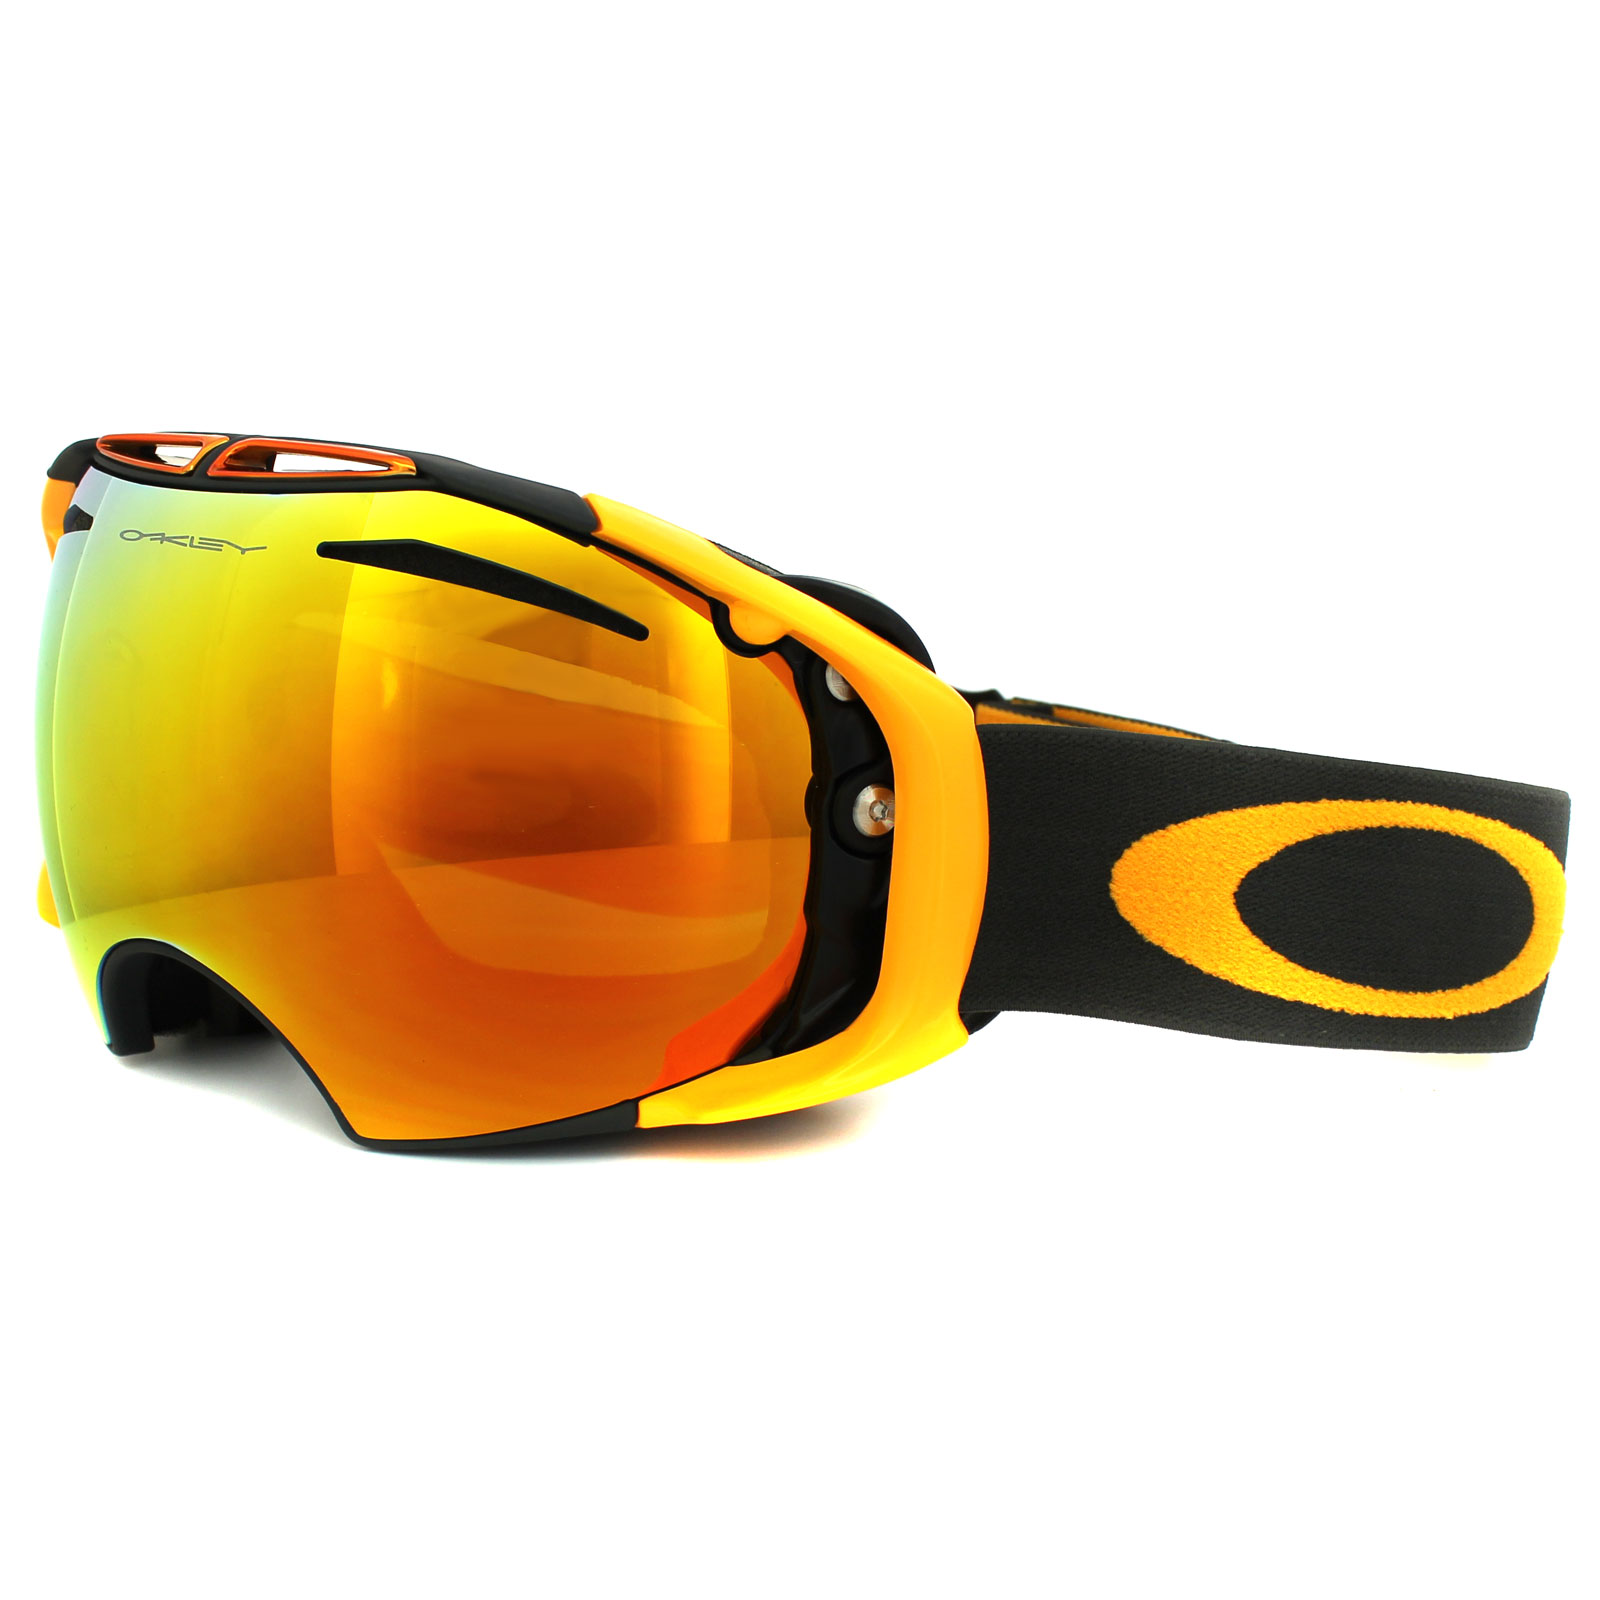 oakley snow glasses  Oakley Ski Snow Goggles Airbrake 59-490 Dark Gunmetal Fire \u0026amp ...